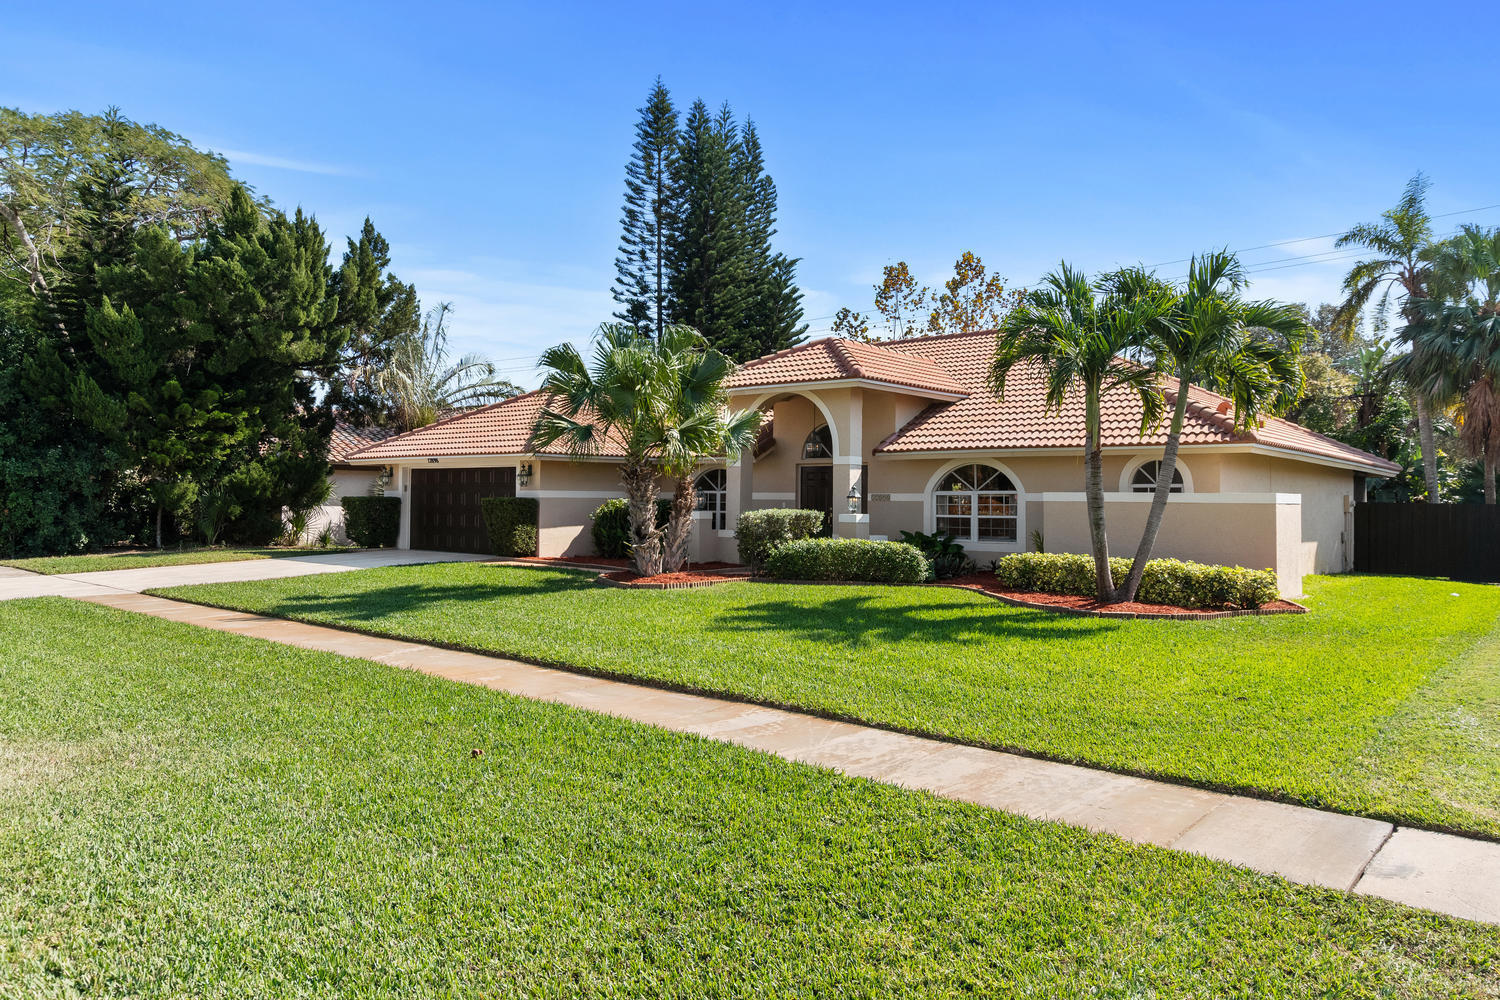 12898 Buckland Street, Wellington, Florida 33414, 4 Bedrooms Bedrooms, ,2 BathroomsBathrooms,Single Family,For Sale,Greenview Shores,Buckland,RX-10496450